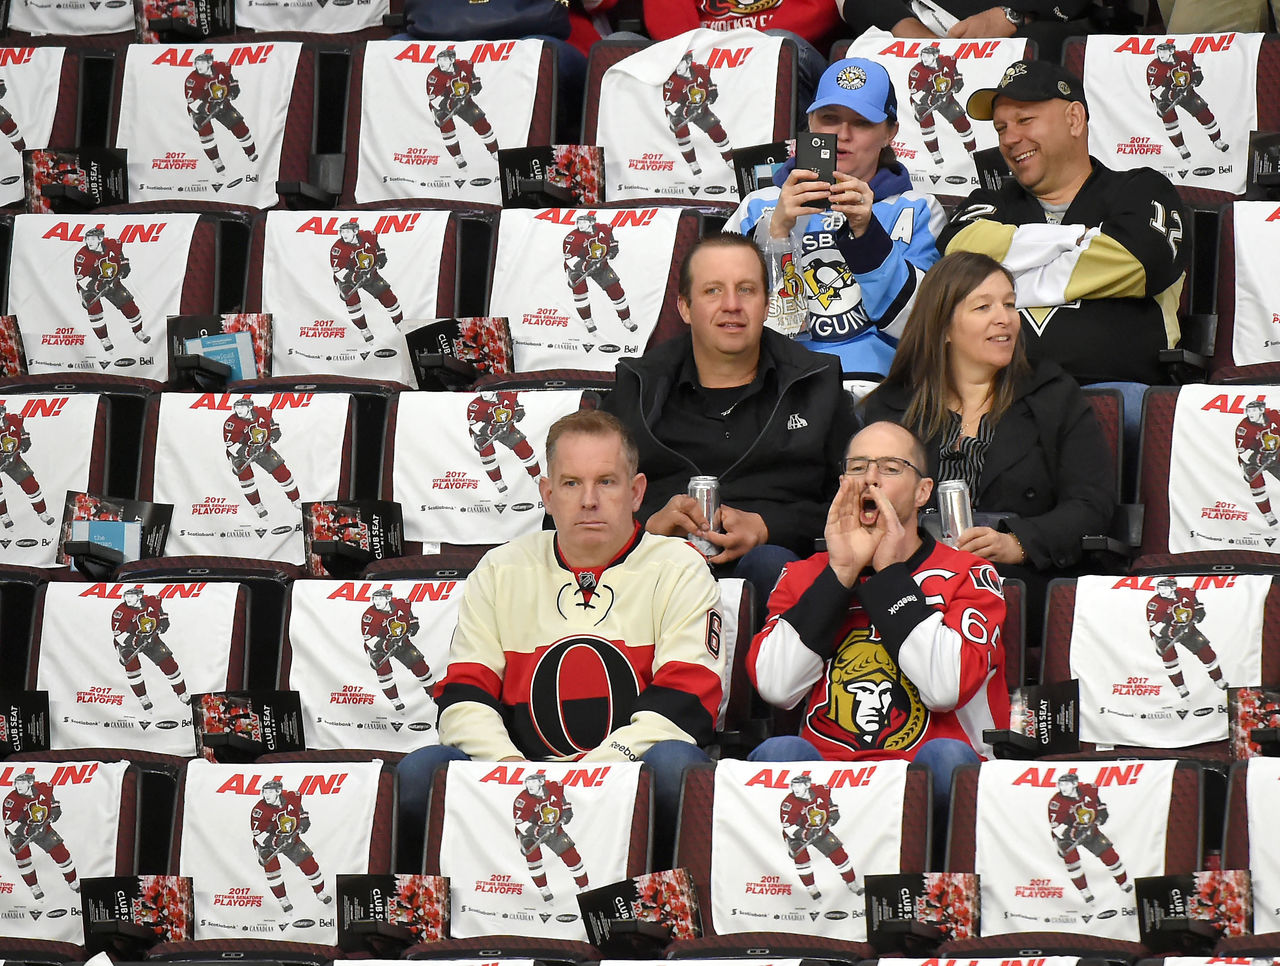 Cropped 2017 05 20t000001z 1128841291 nocid rtrmadp 3 nhl stanley cup playoffs pittsburgh penguins at ottawa senators